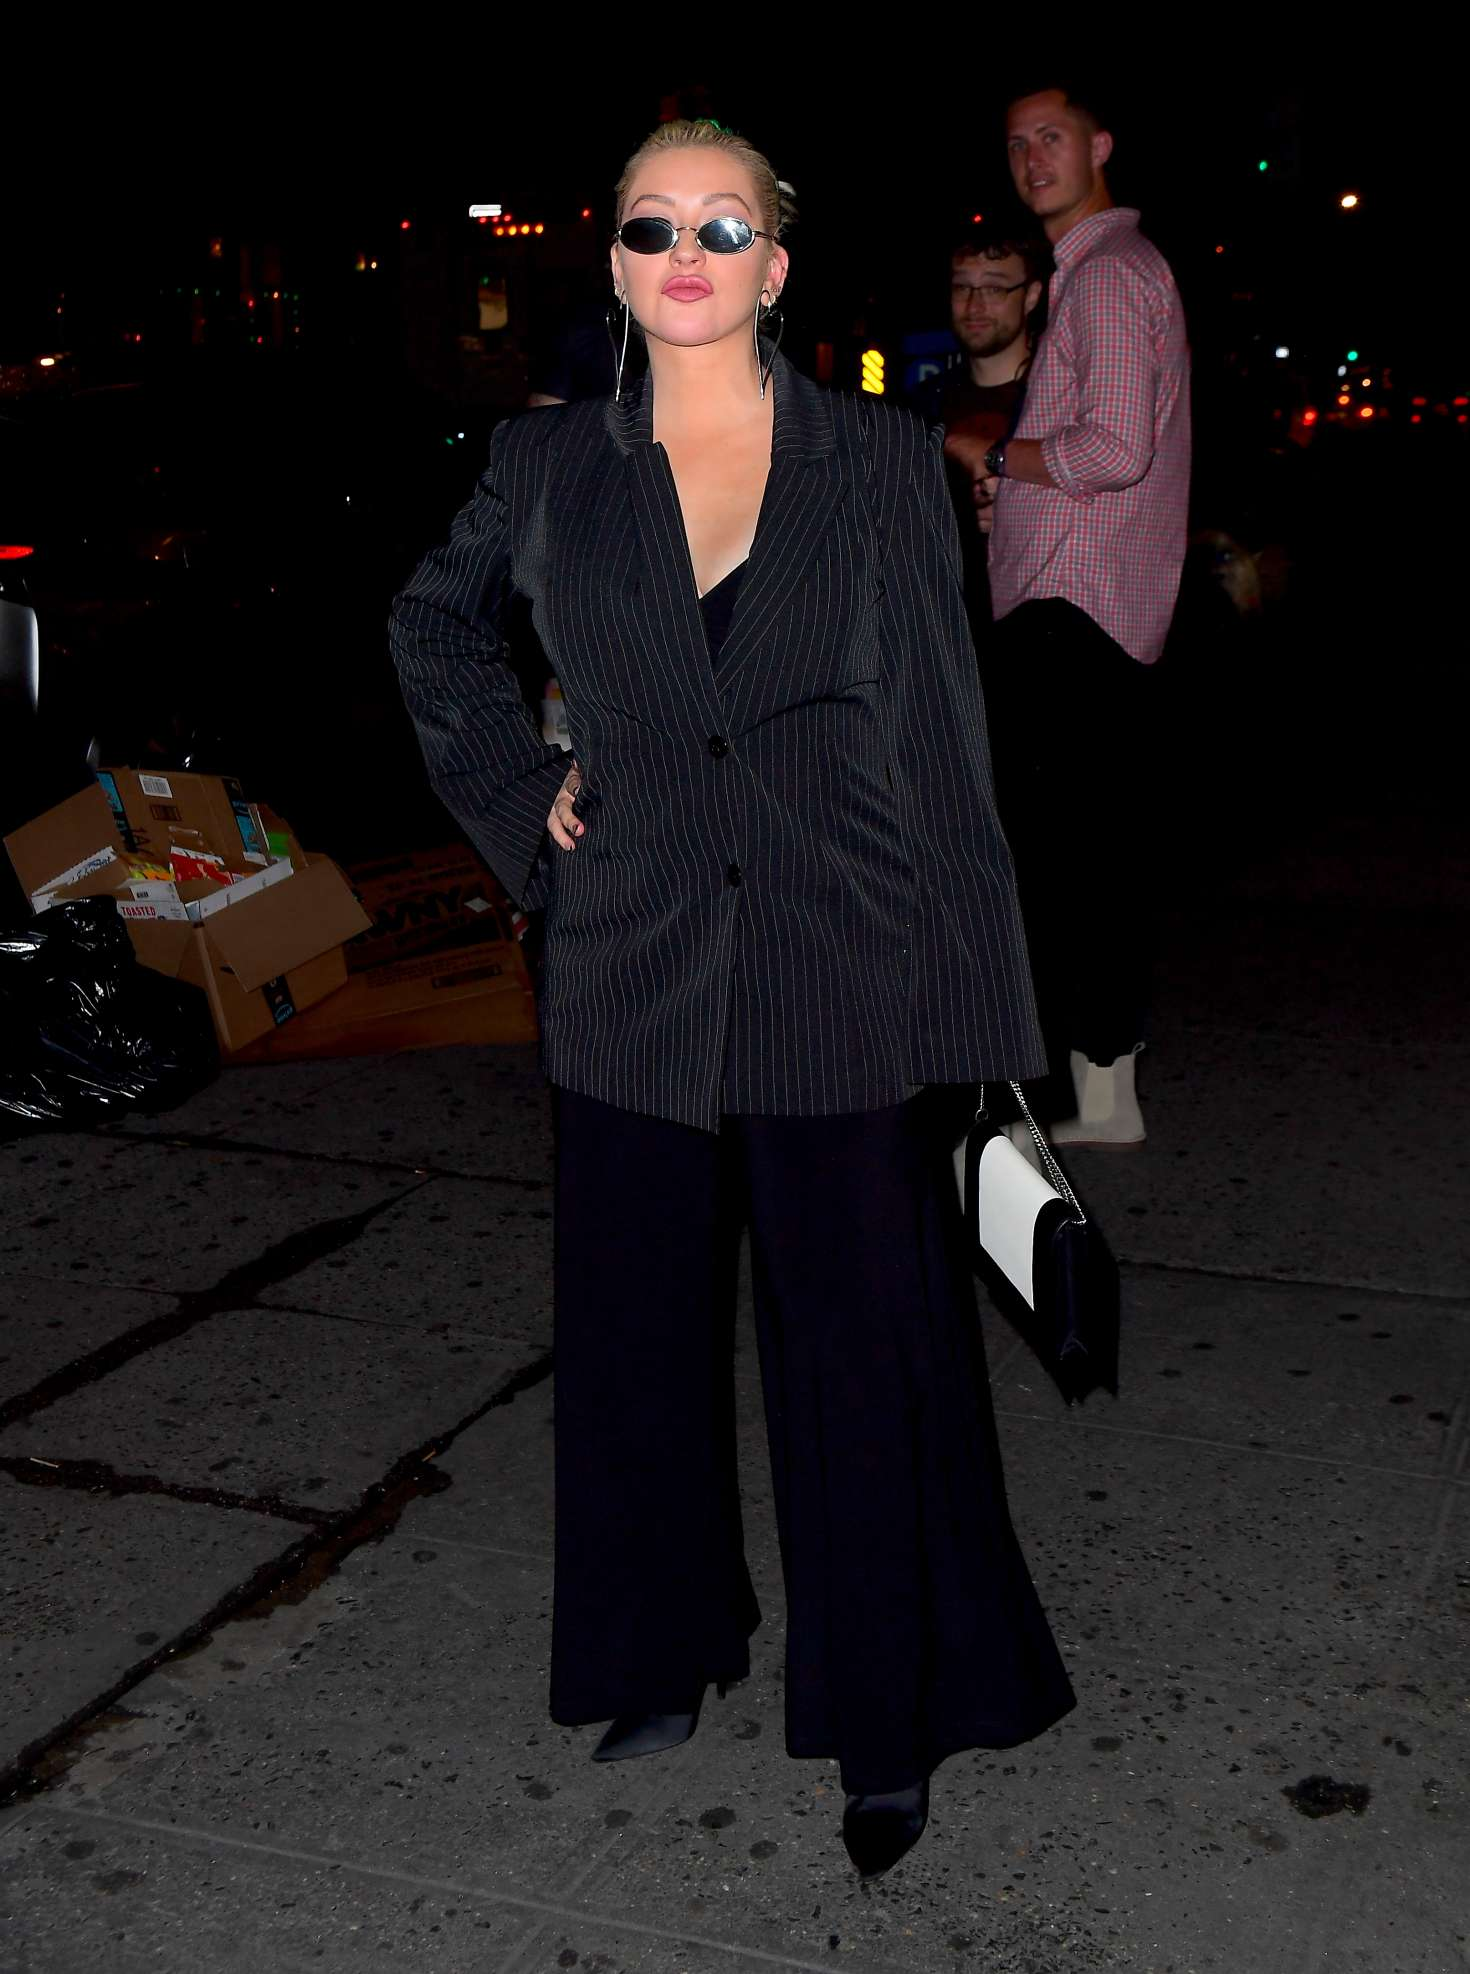 Christina Aguilera - Night out in New York